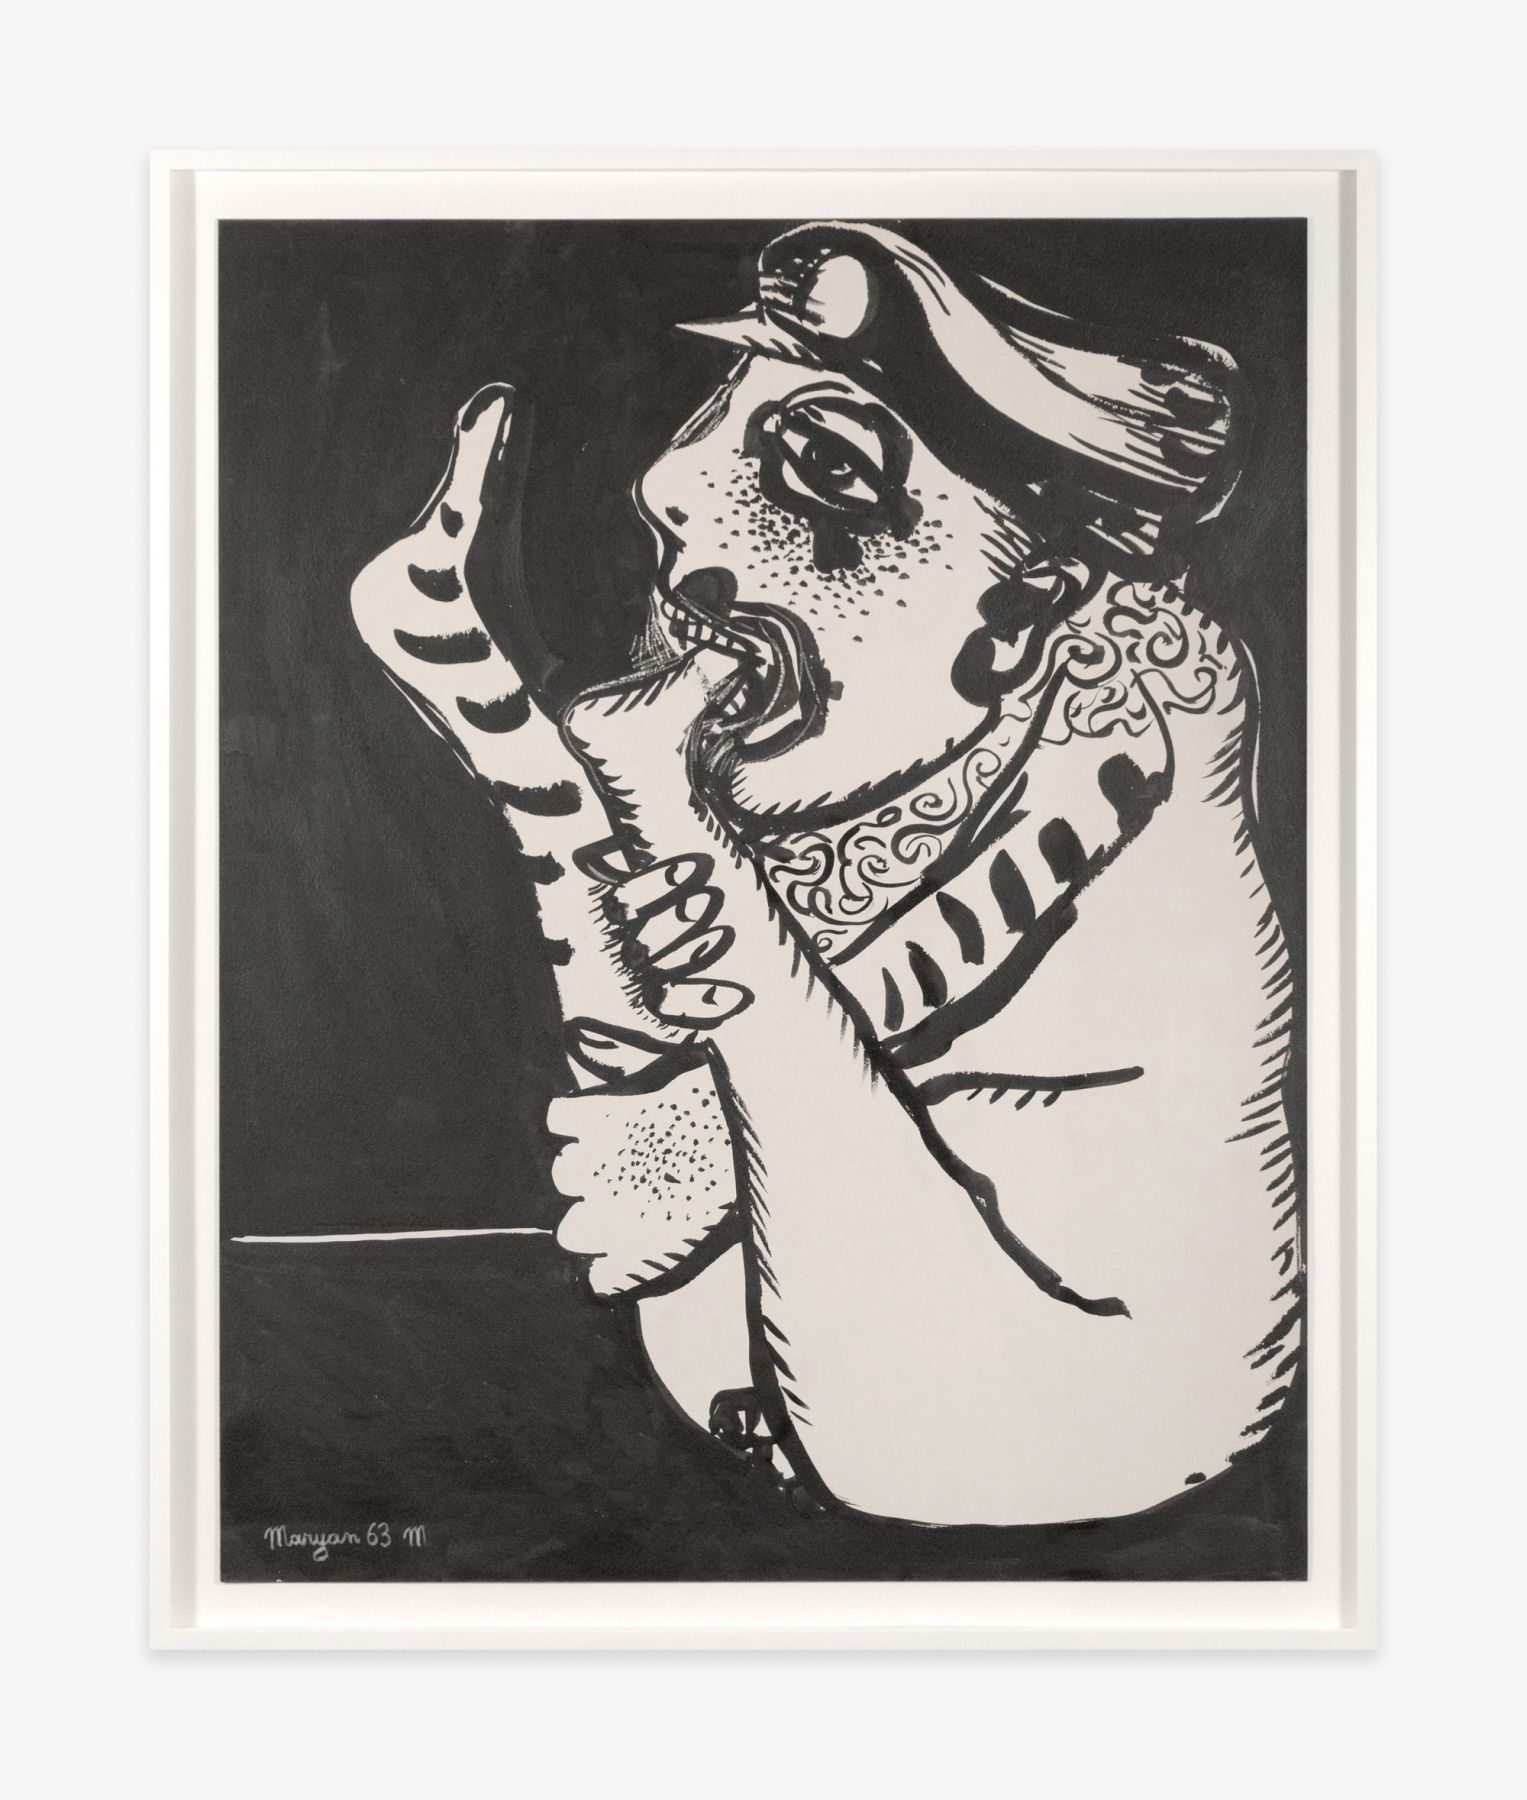 Maryan Personnage I, 1963